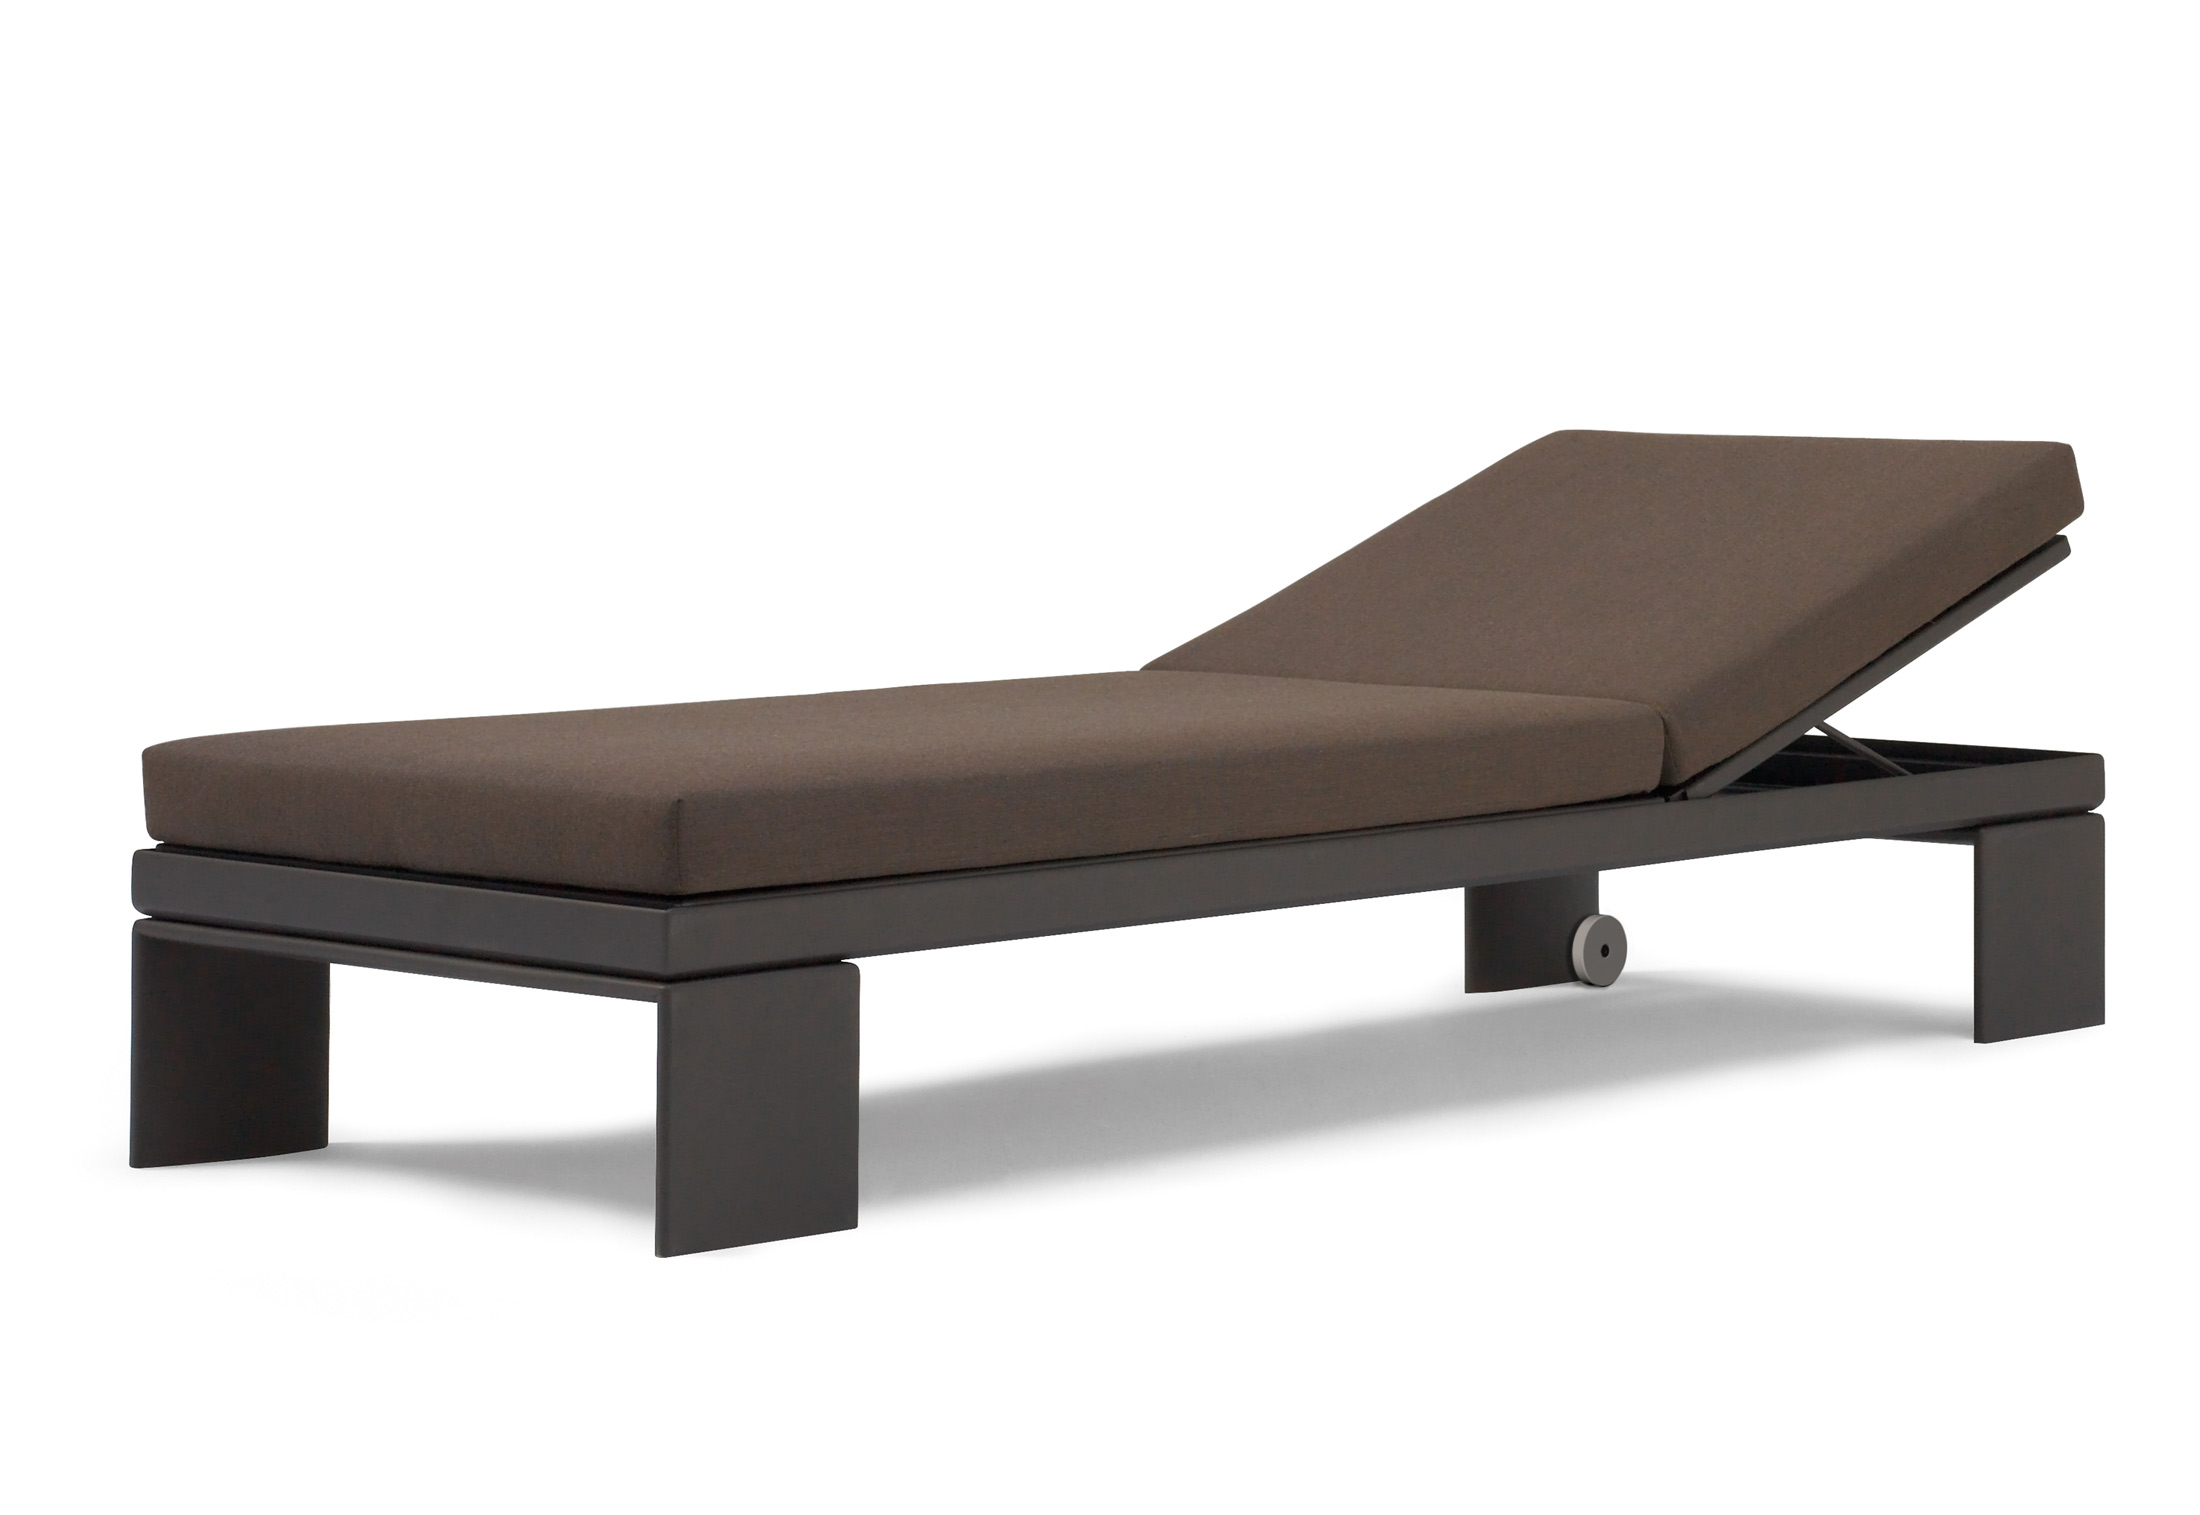 Landscape alu chaise longue by andreu world stylepark for Chaise longue textilene alu